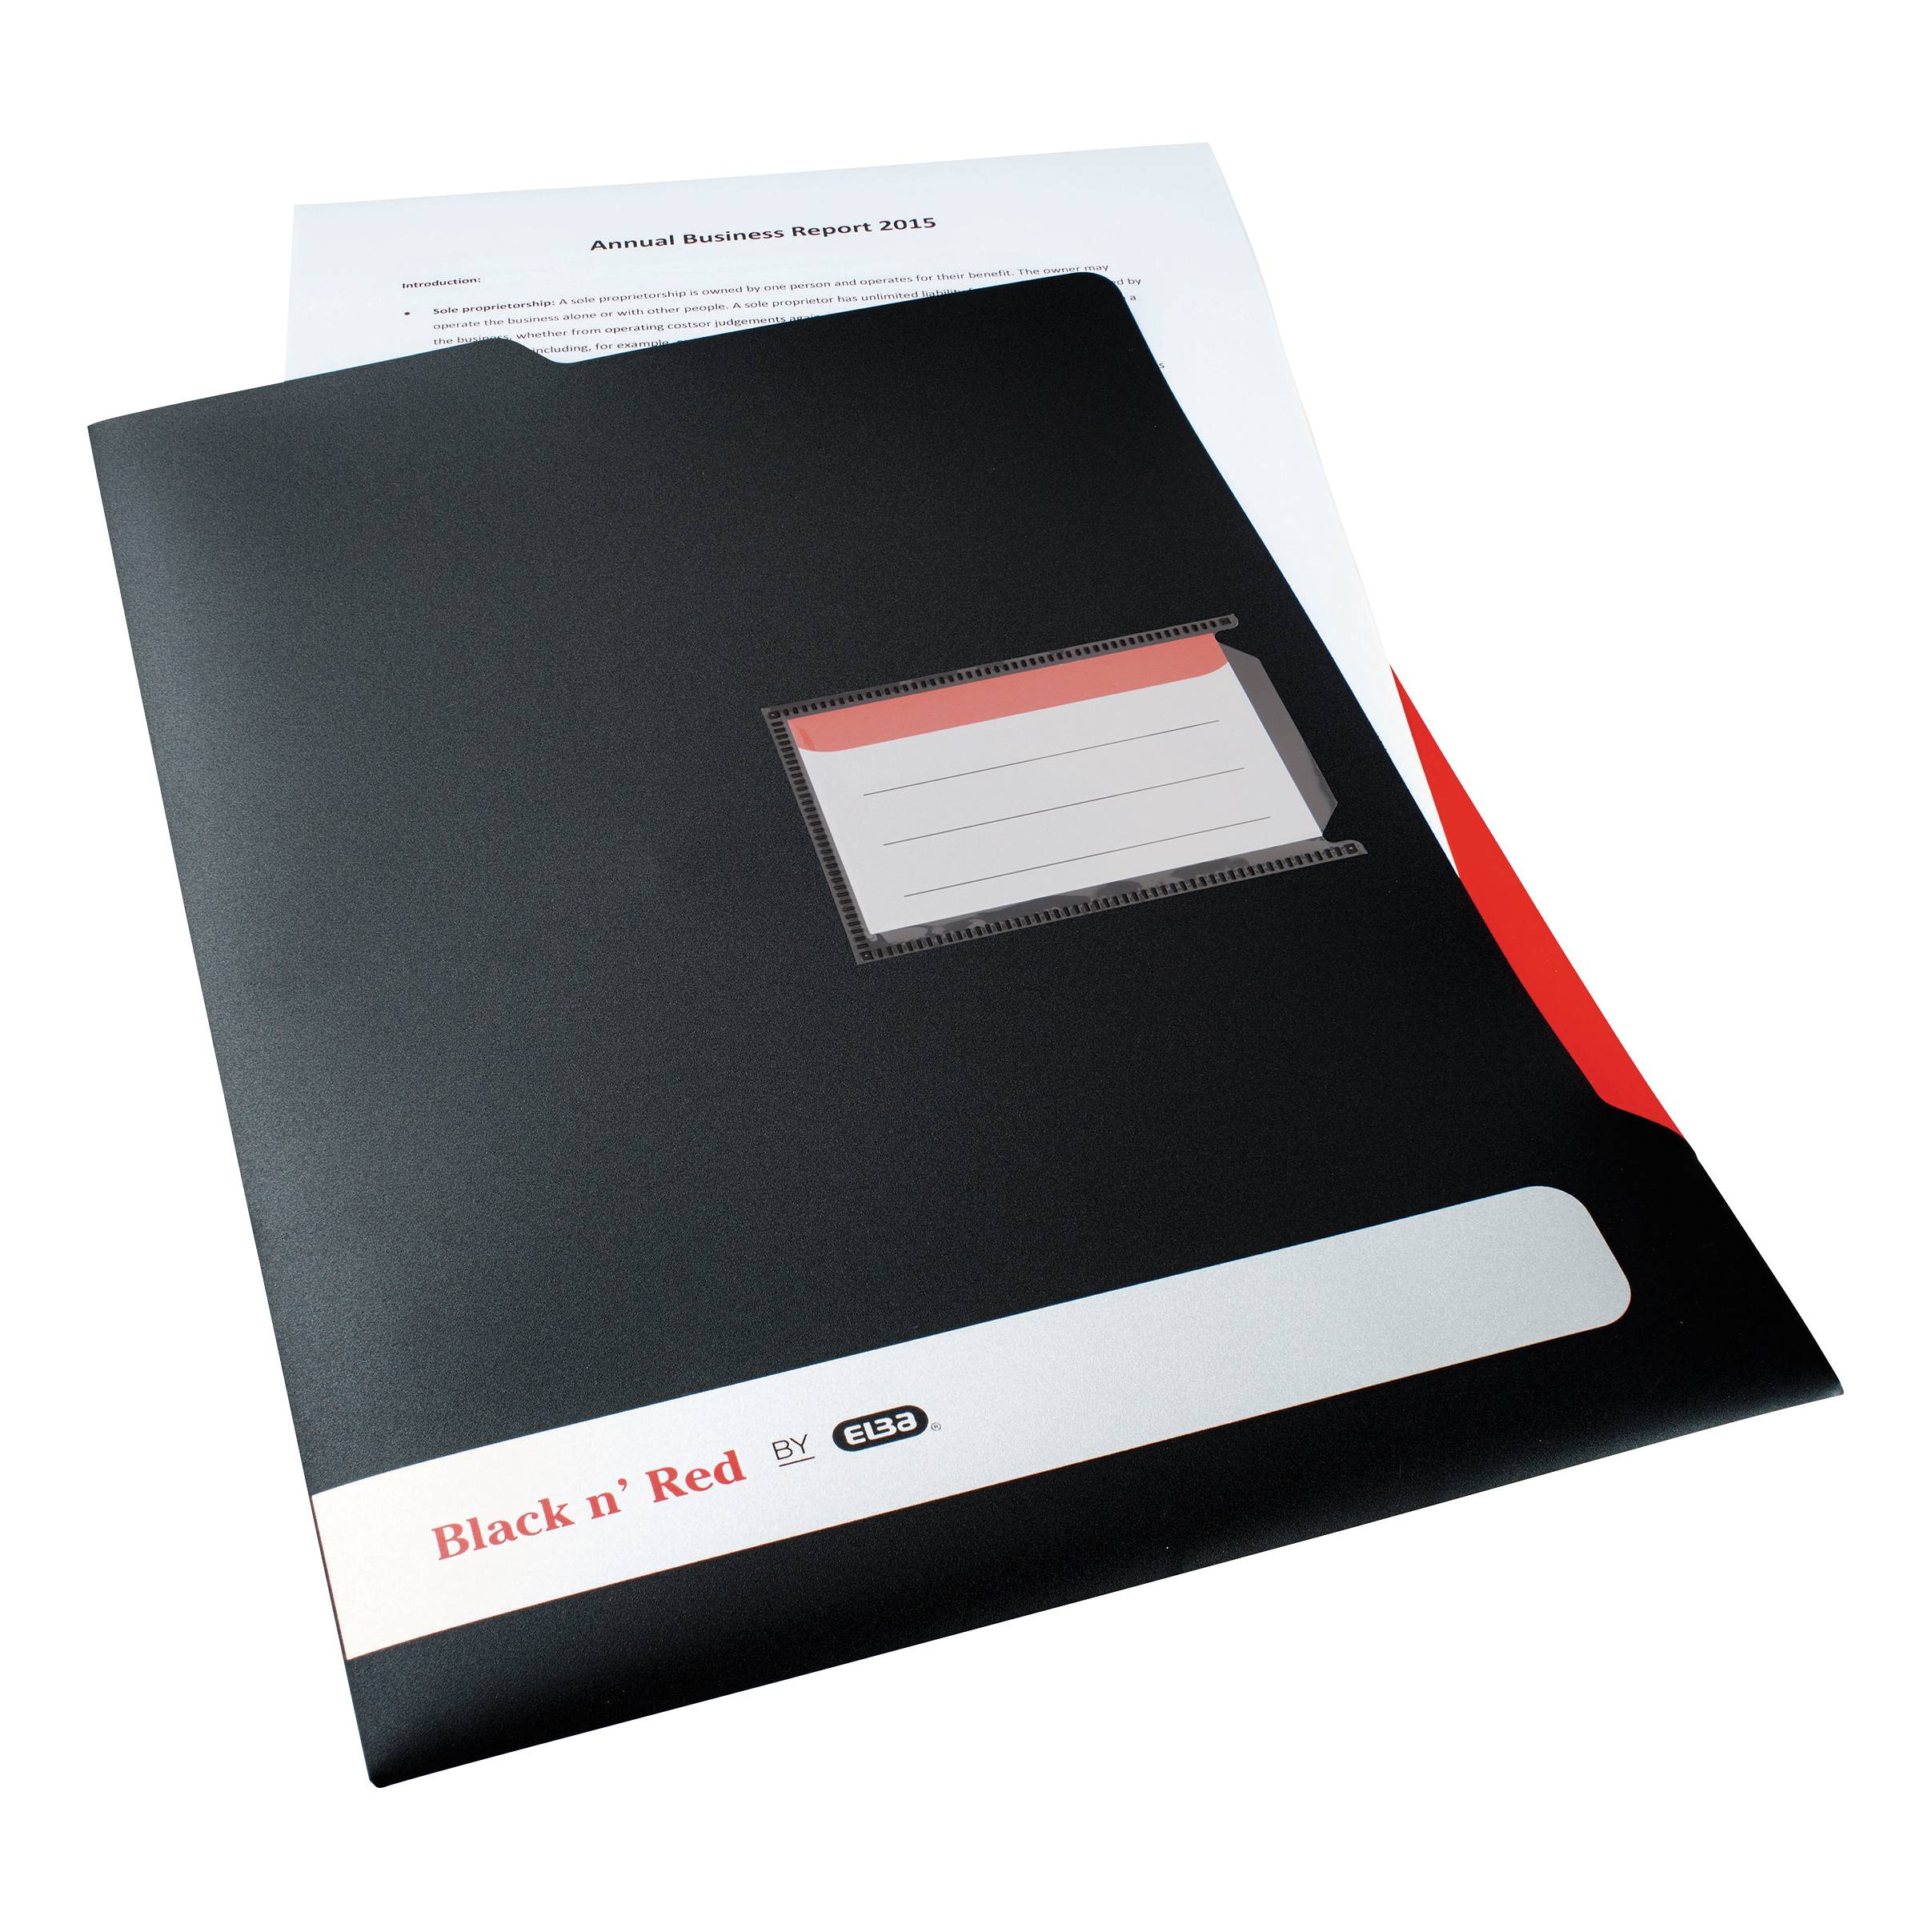 Black n Red by Elba L Folder Polypropylene A4 Ref 400051533 [Pack 5]